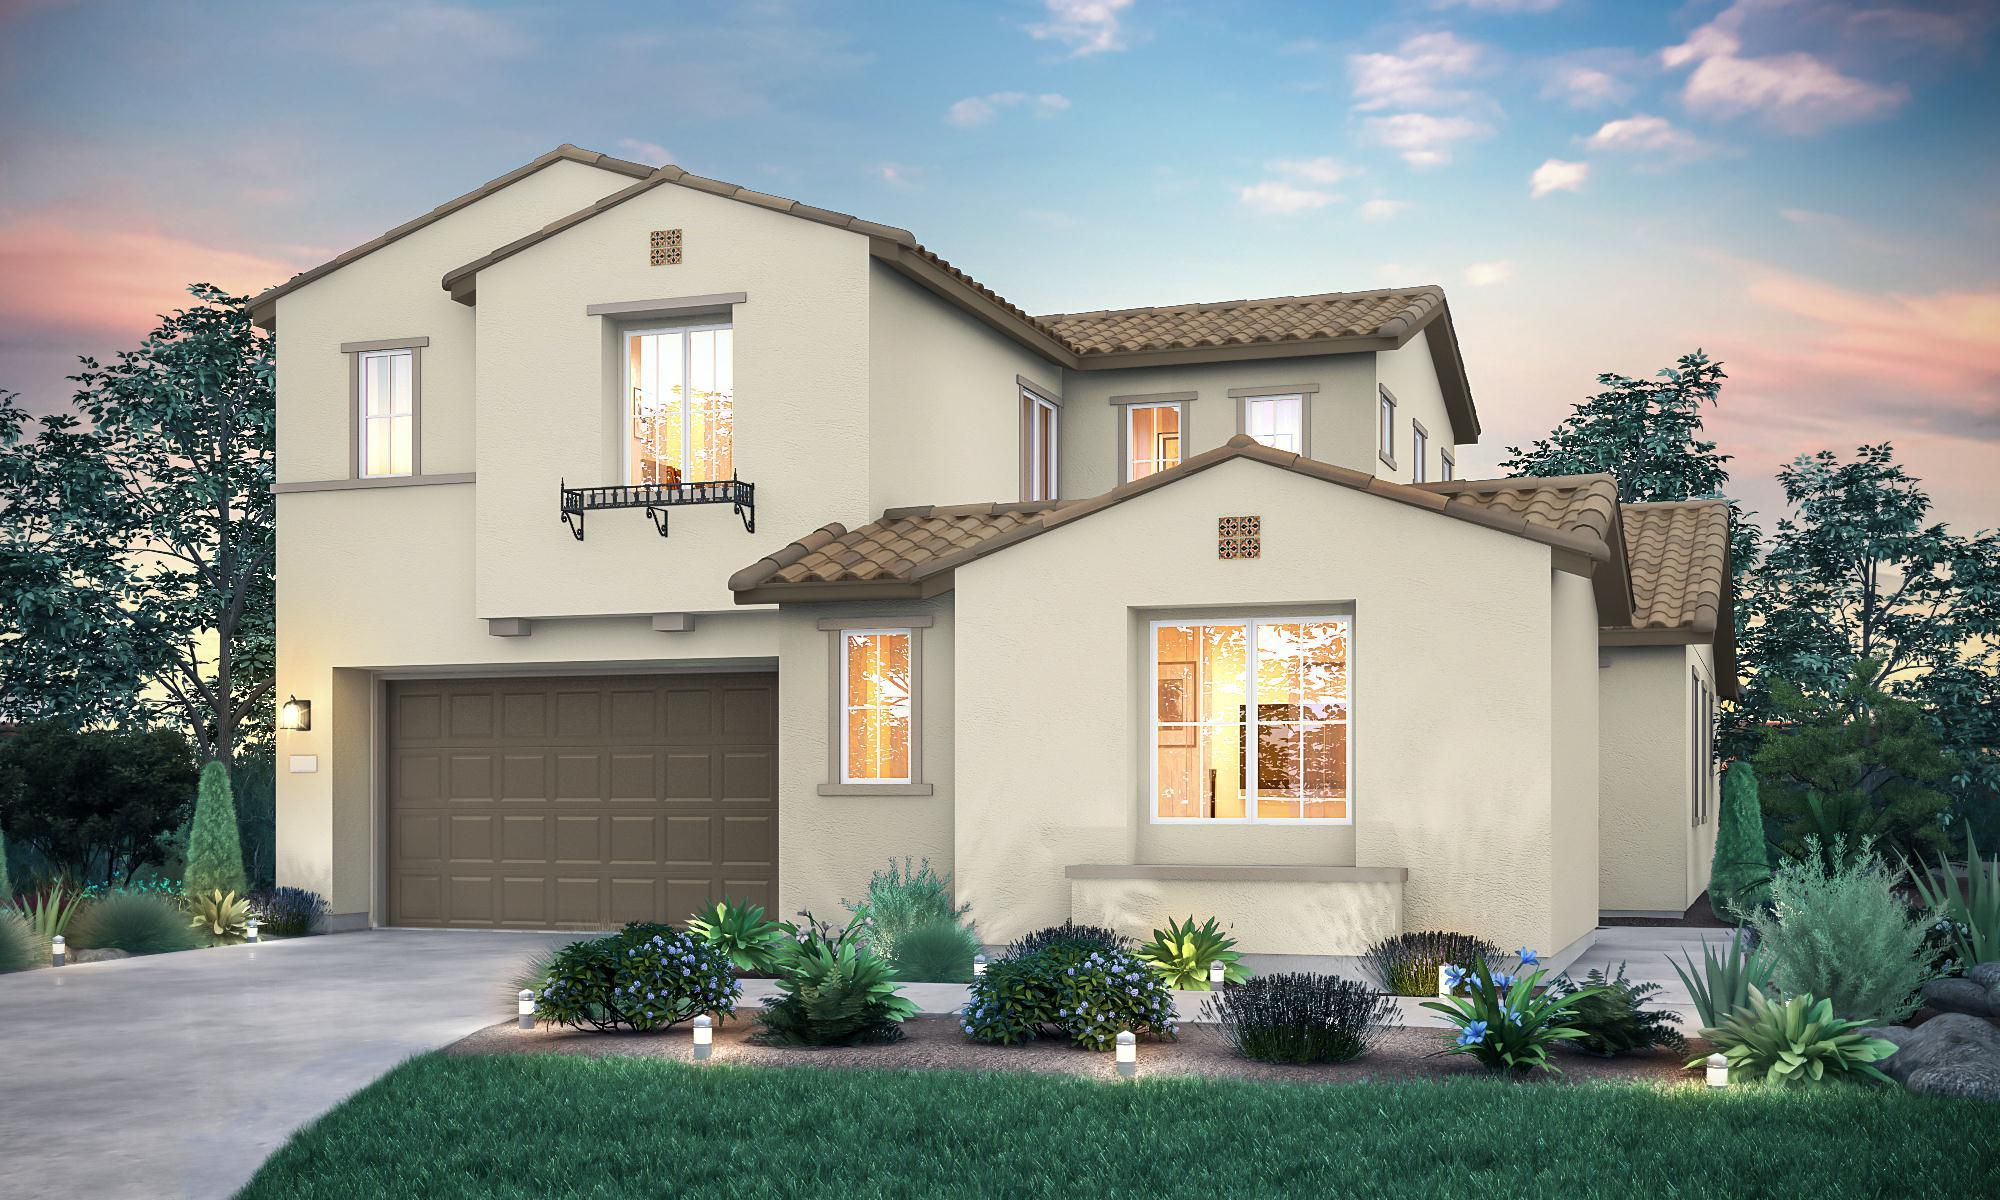 Exterior featured in the Residence 4 By Signature Homes CA in Santa Rosa, CA